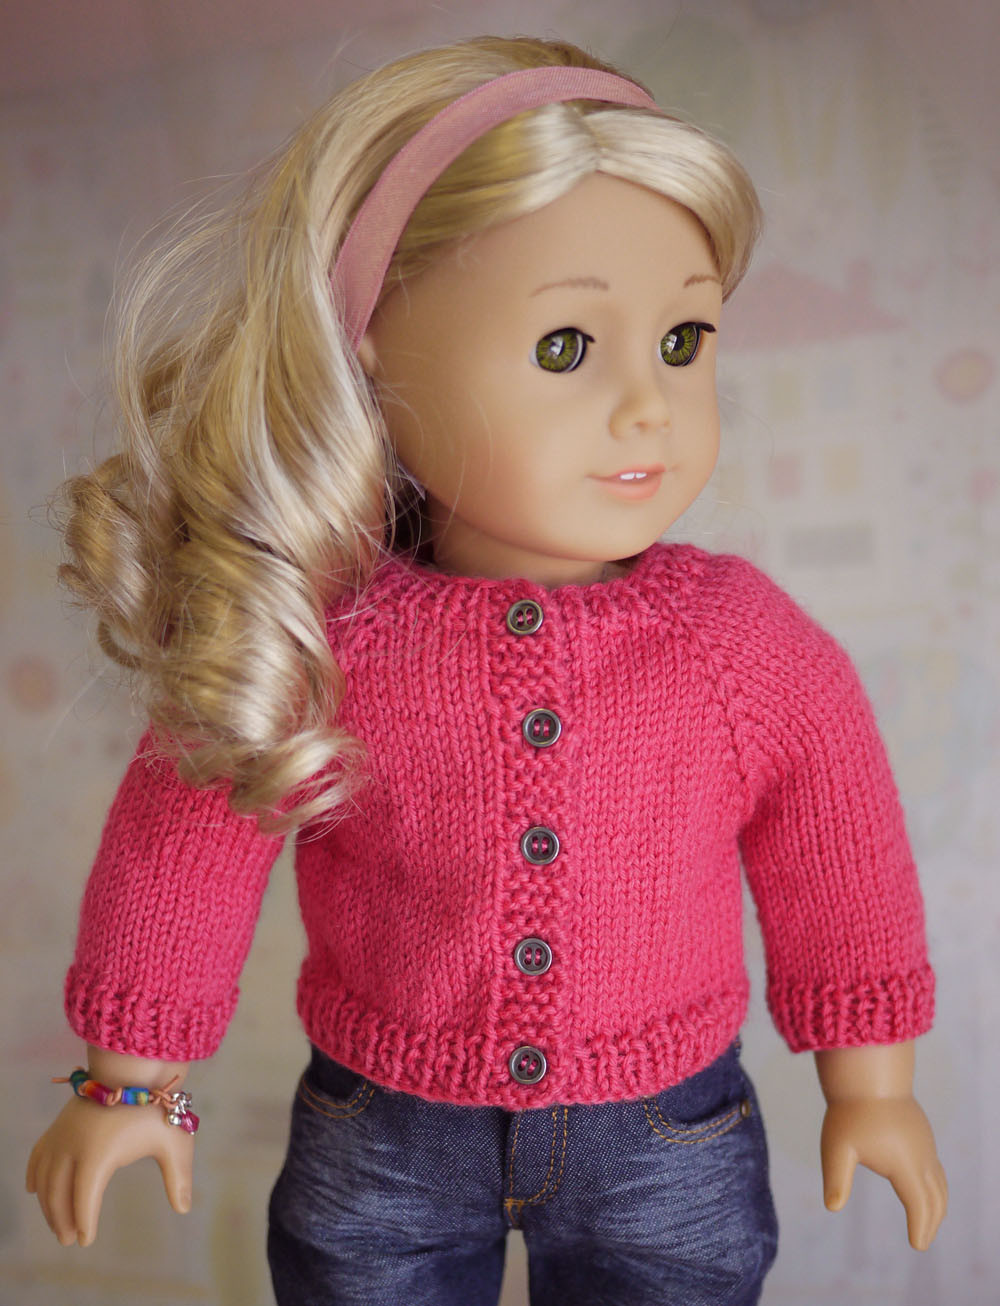 Unique American Girl Doll Cardigan Sweater Knitting Pattern Free American Girl Doll Patterns Of Top 44 Pics Free American Girl Doll Patterns